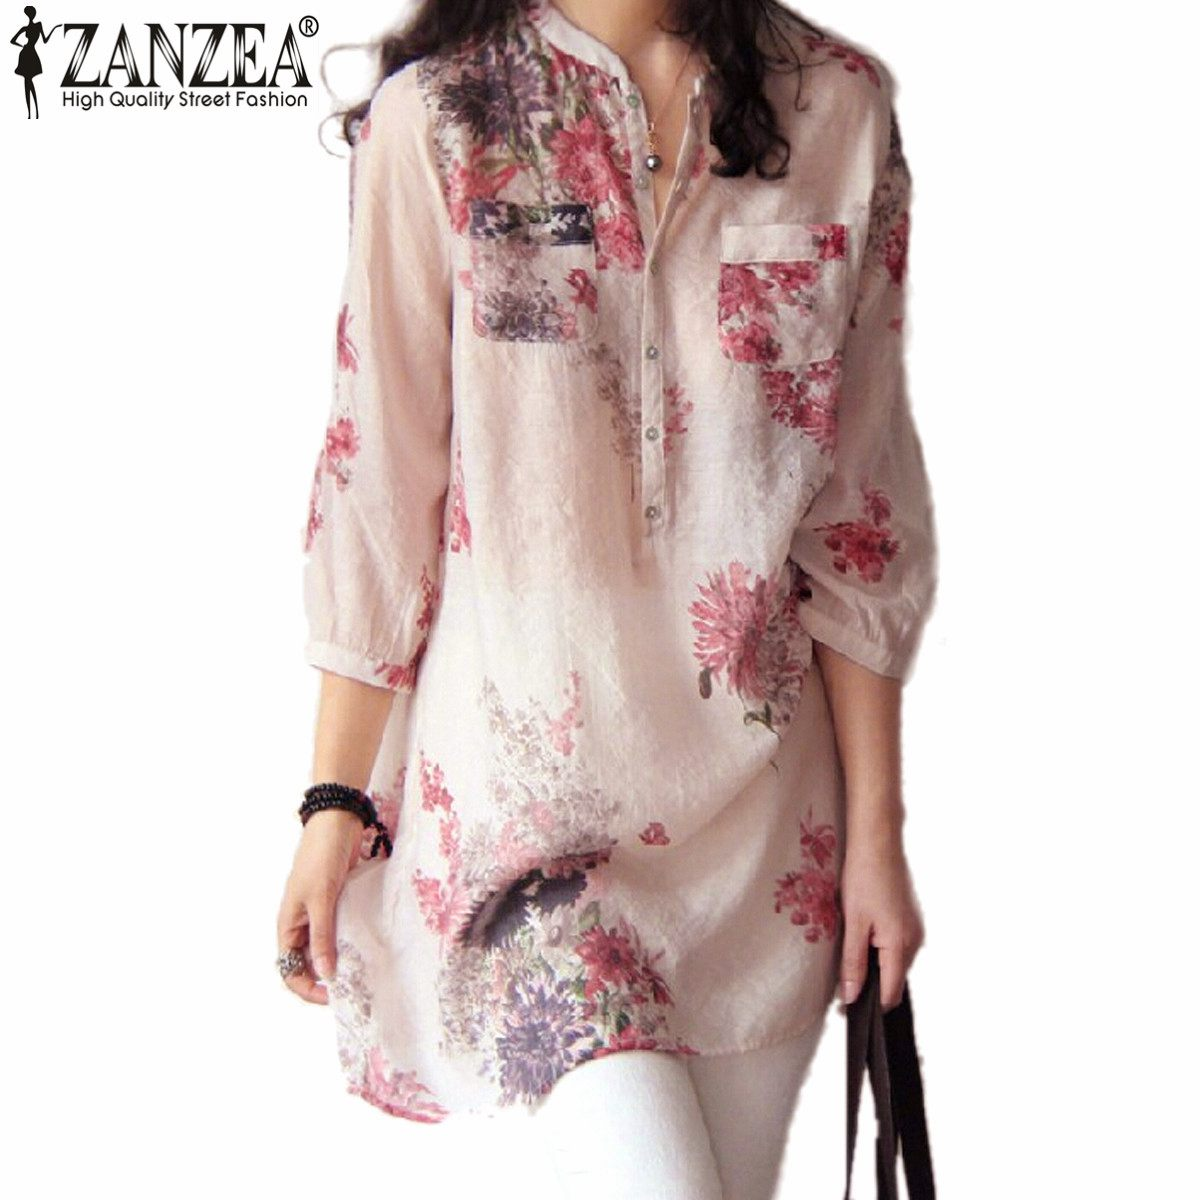 Zanzea Women Blouses Fashion 2017 Summer Blusas Blouse Button Casual Floral Print Long Tops Shirts Plus Size M-5XL